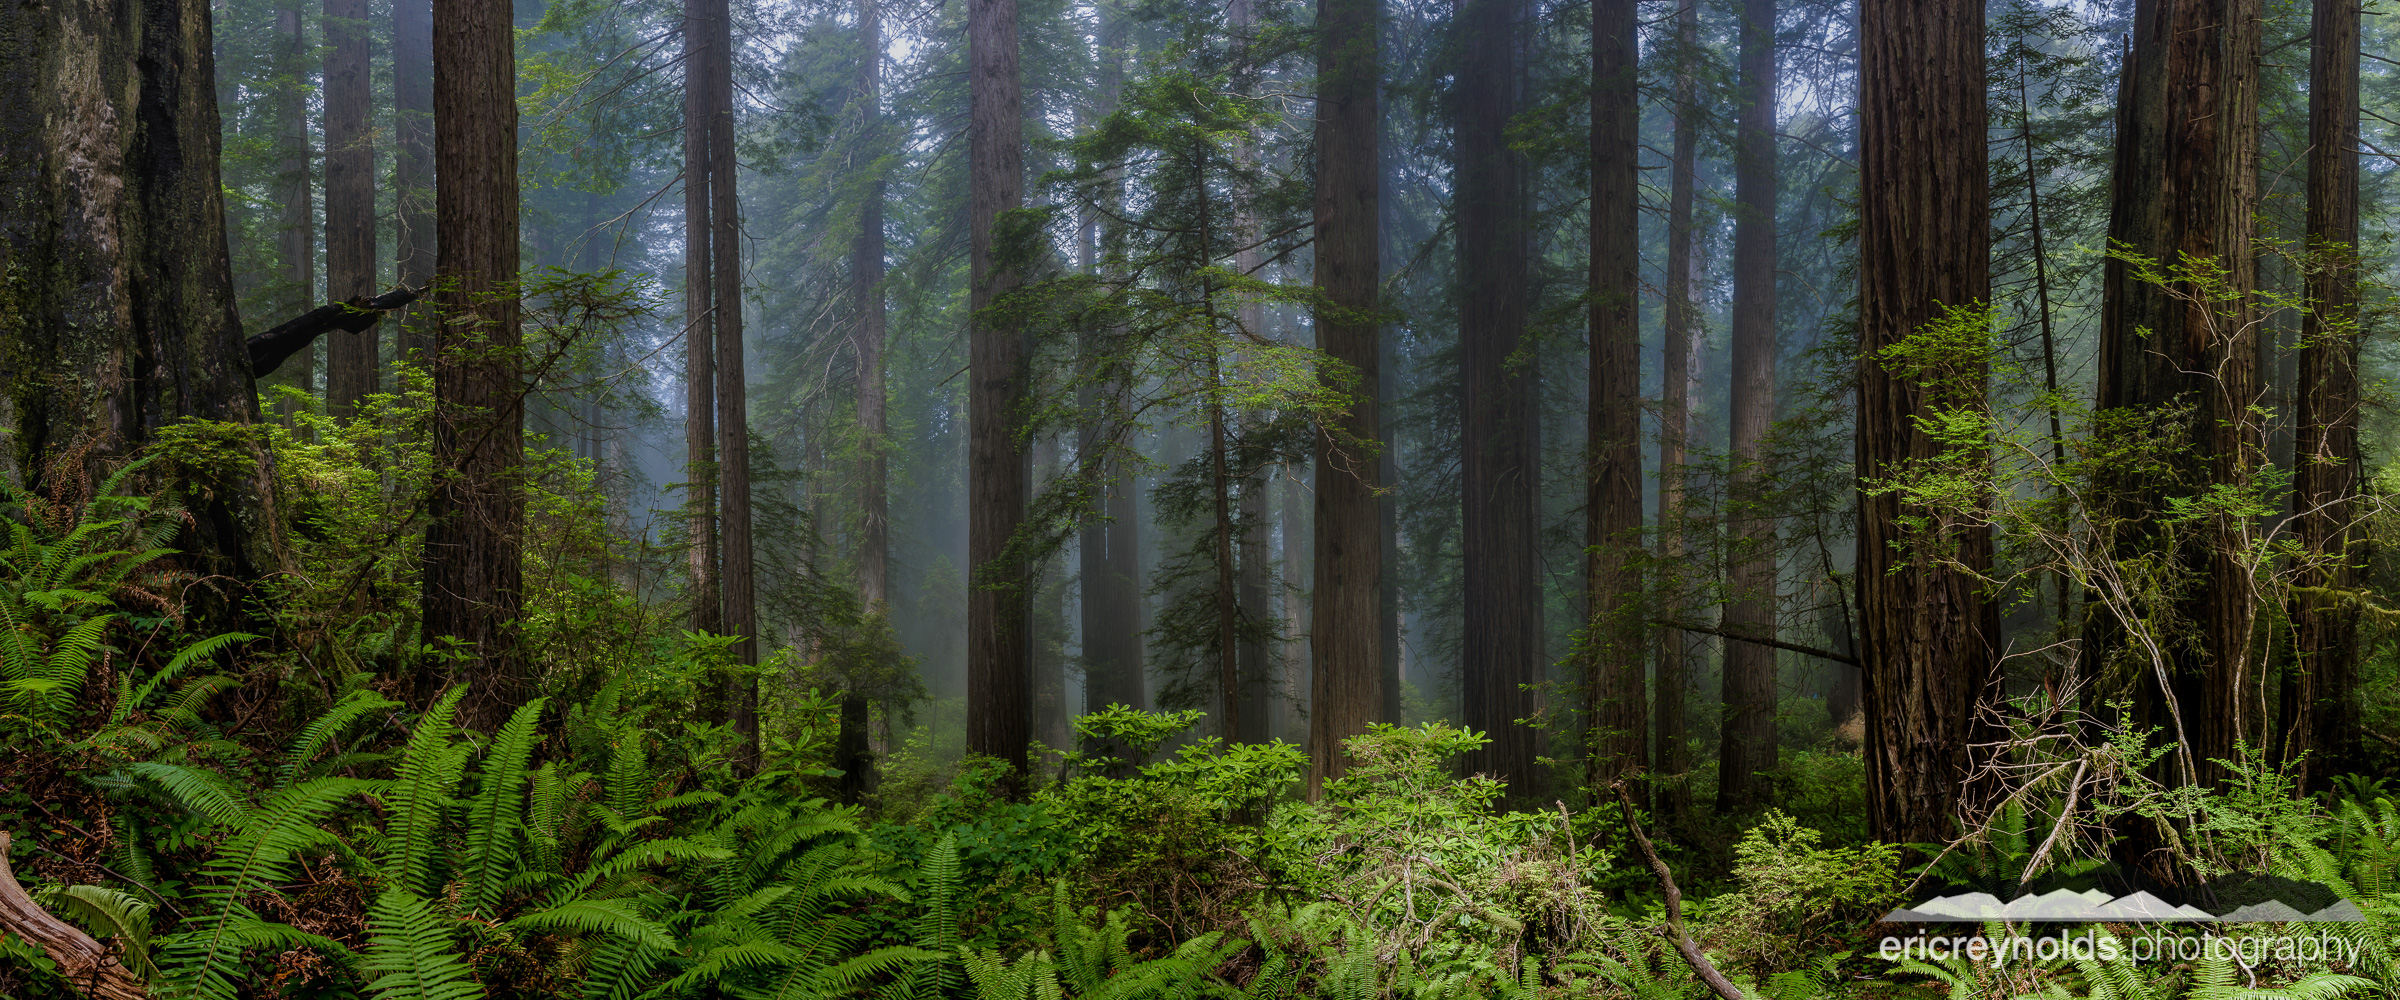 Redwoods in the Mist by Eric Reynolds - Landscape Photographer